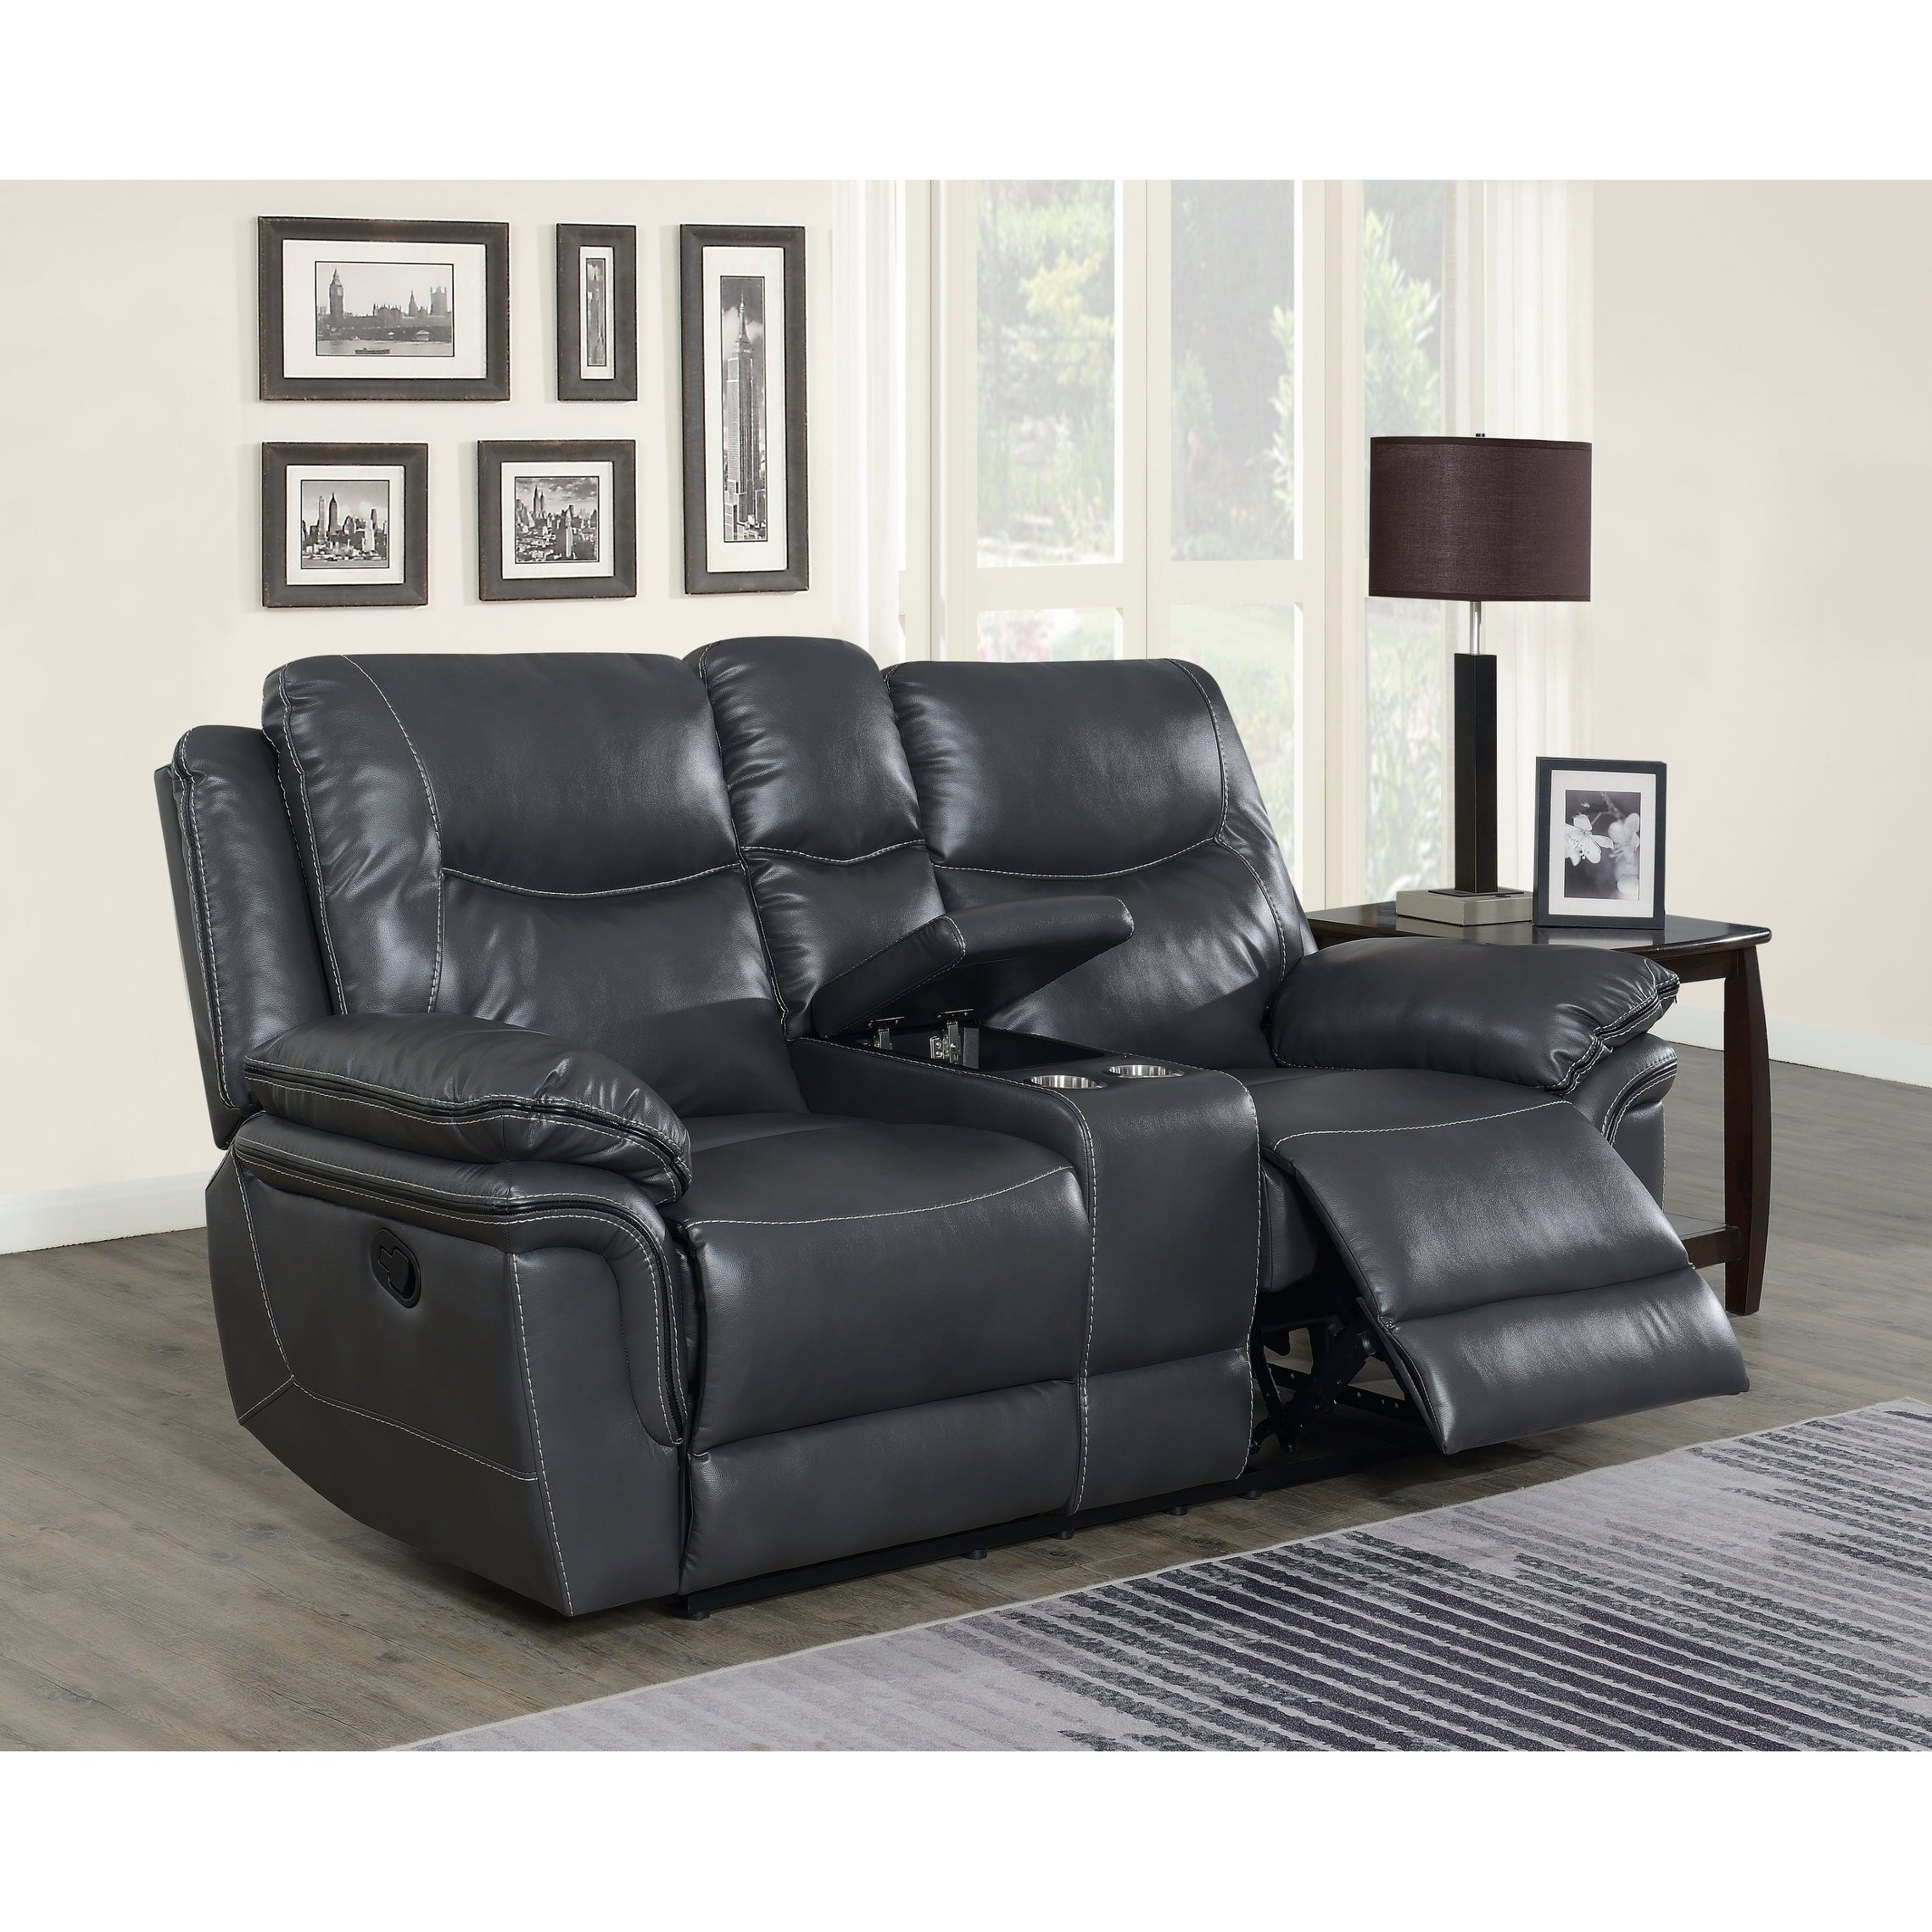 Astounding Irrigone Faux Leather Reclining Loveseat With Storage By Greyson Living Machost Co Dining Chair Design Ideas Machostcouk